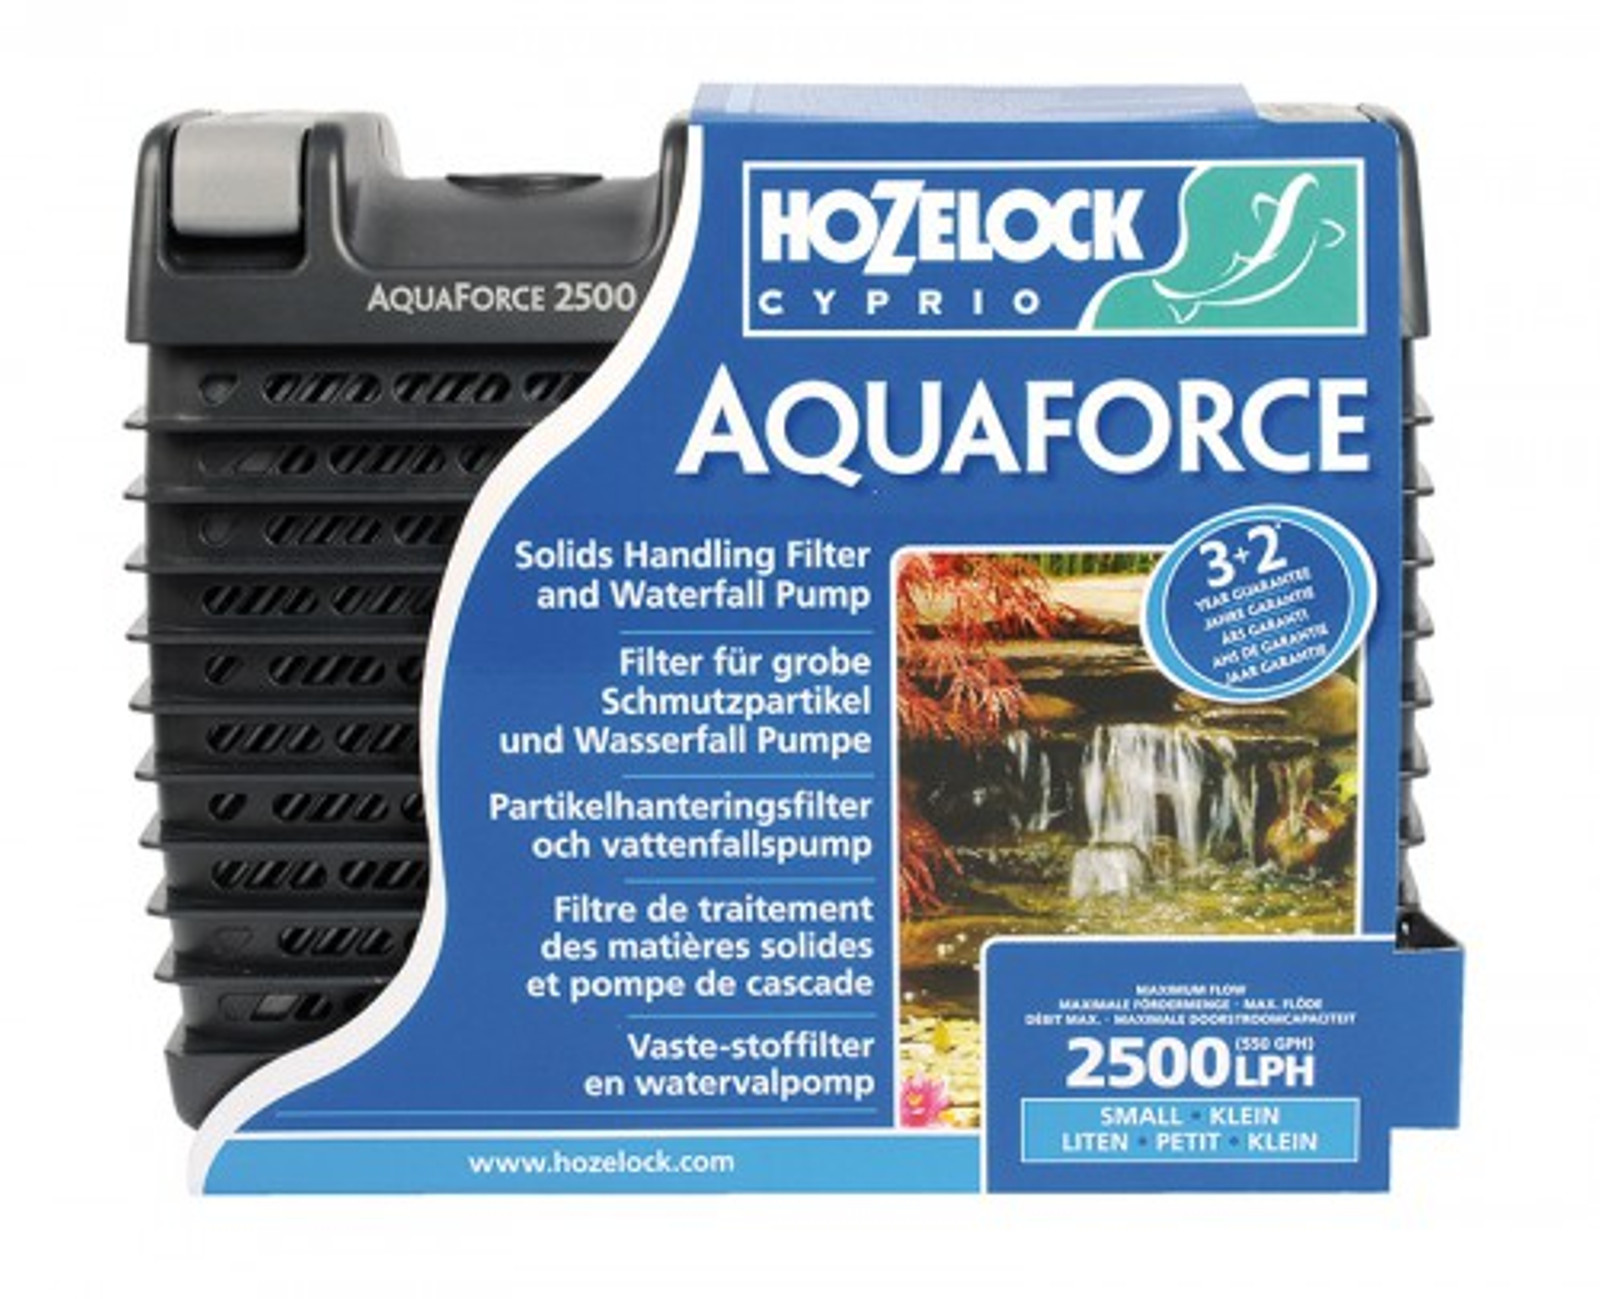 Aquaforce 1000 – Bild 2